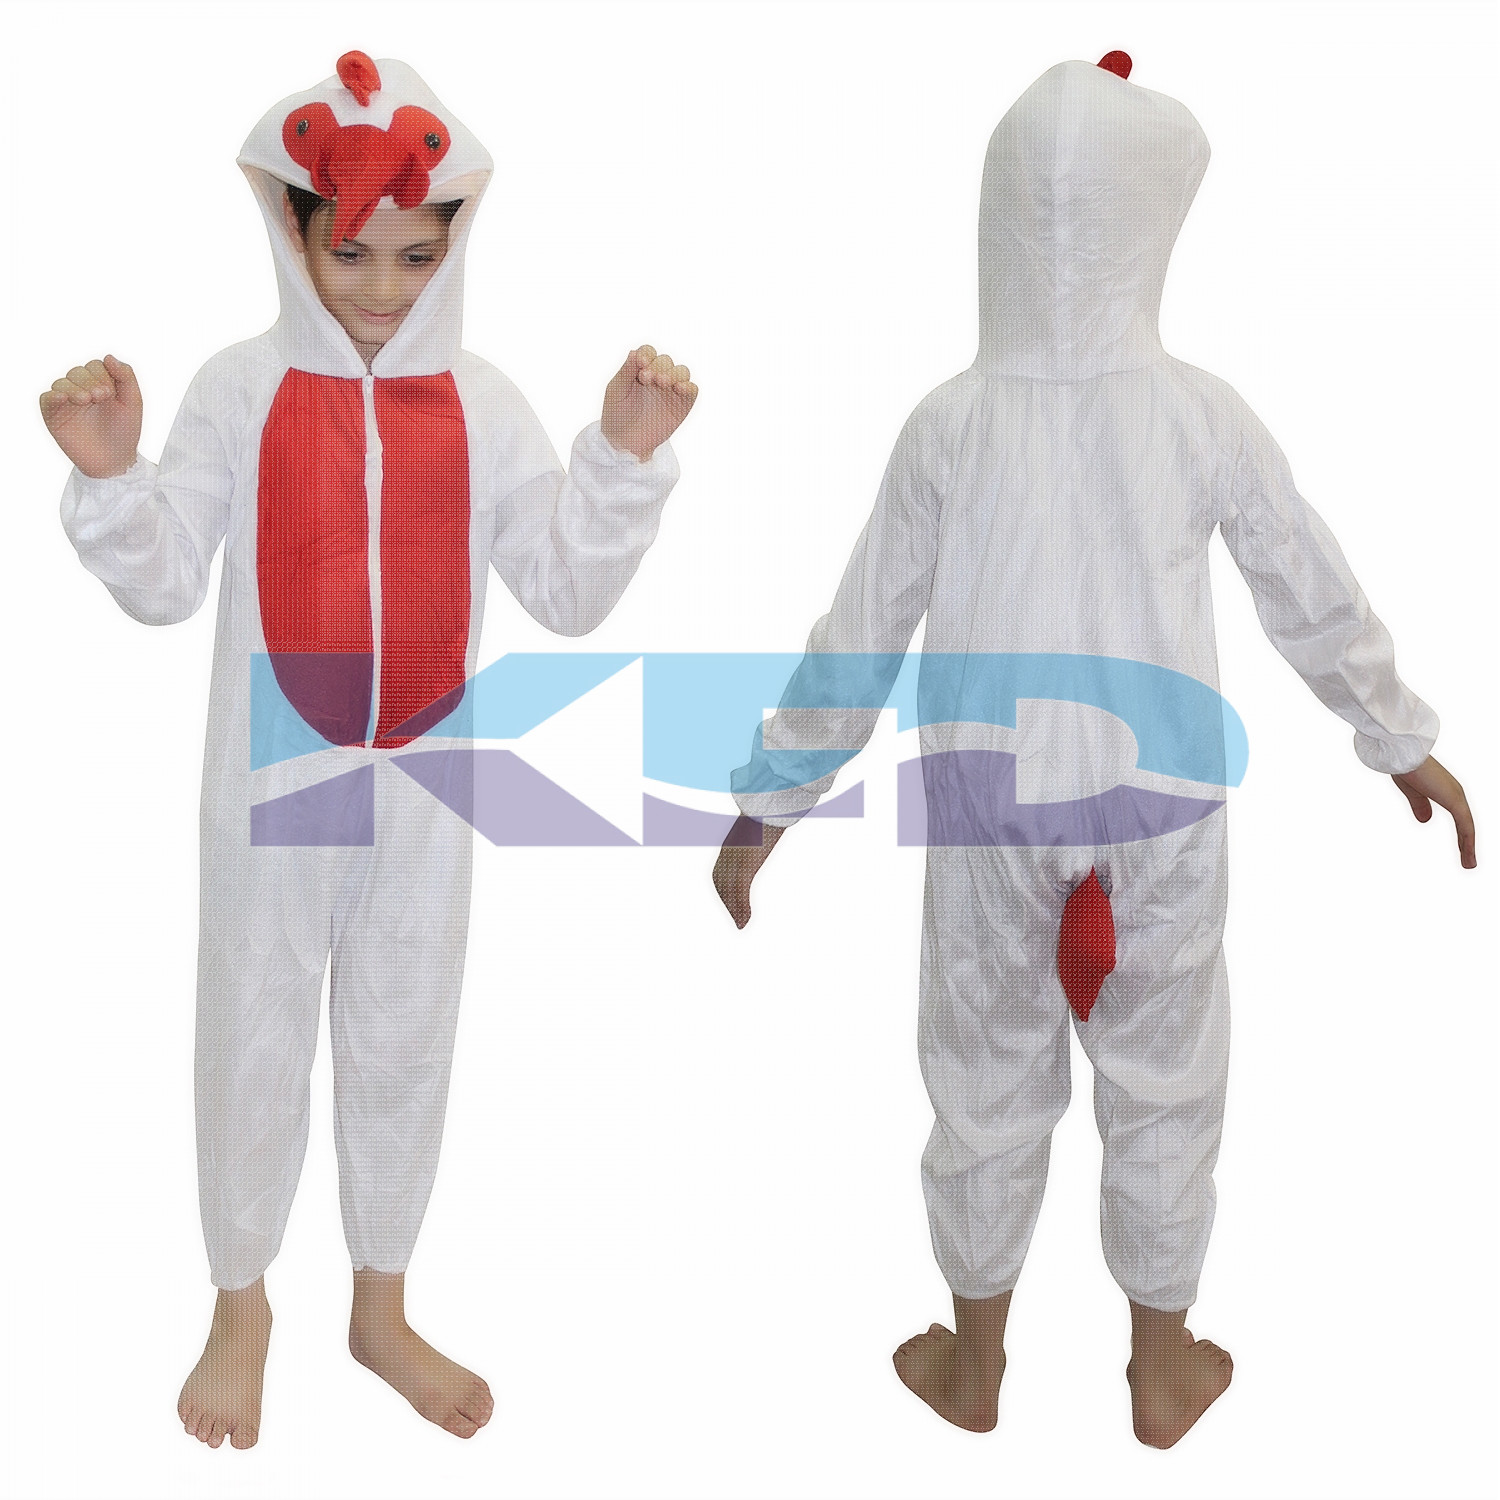 Cock fancy dress for kids,Bird Costume for School Annual function/Theme Party/Competition/Stage Shows Dress